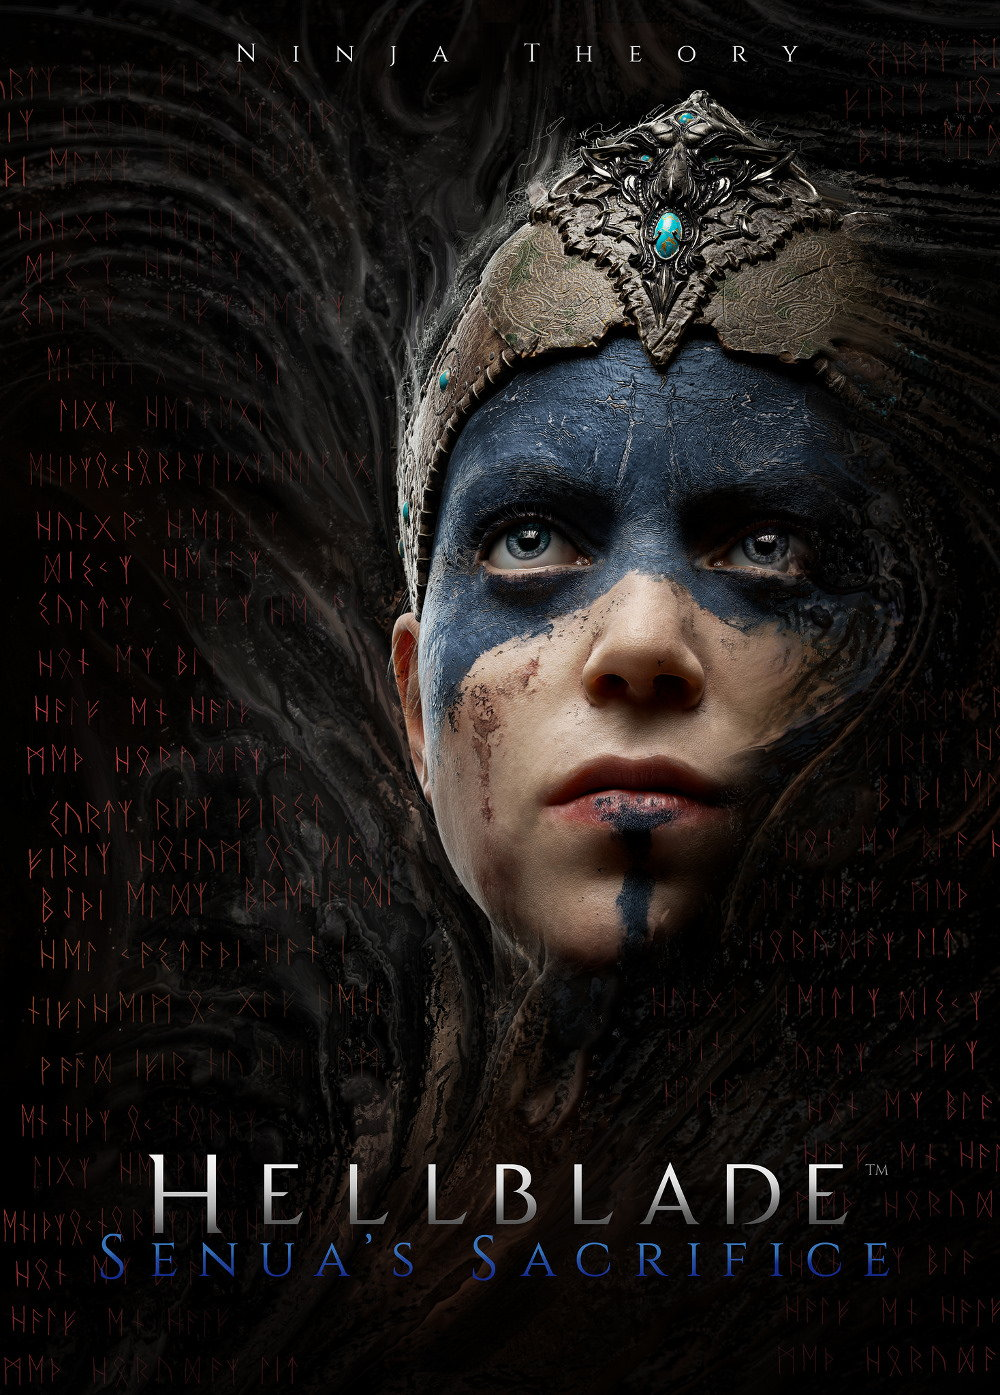 Hellblade new poster